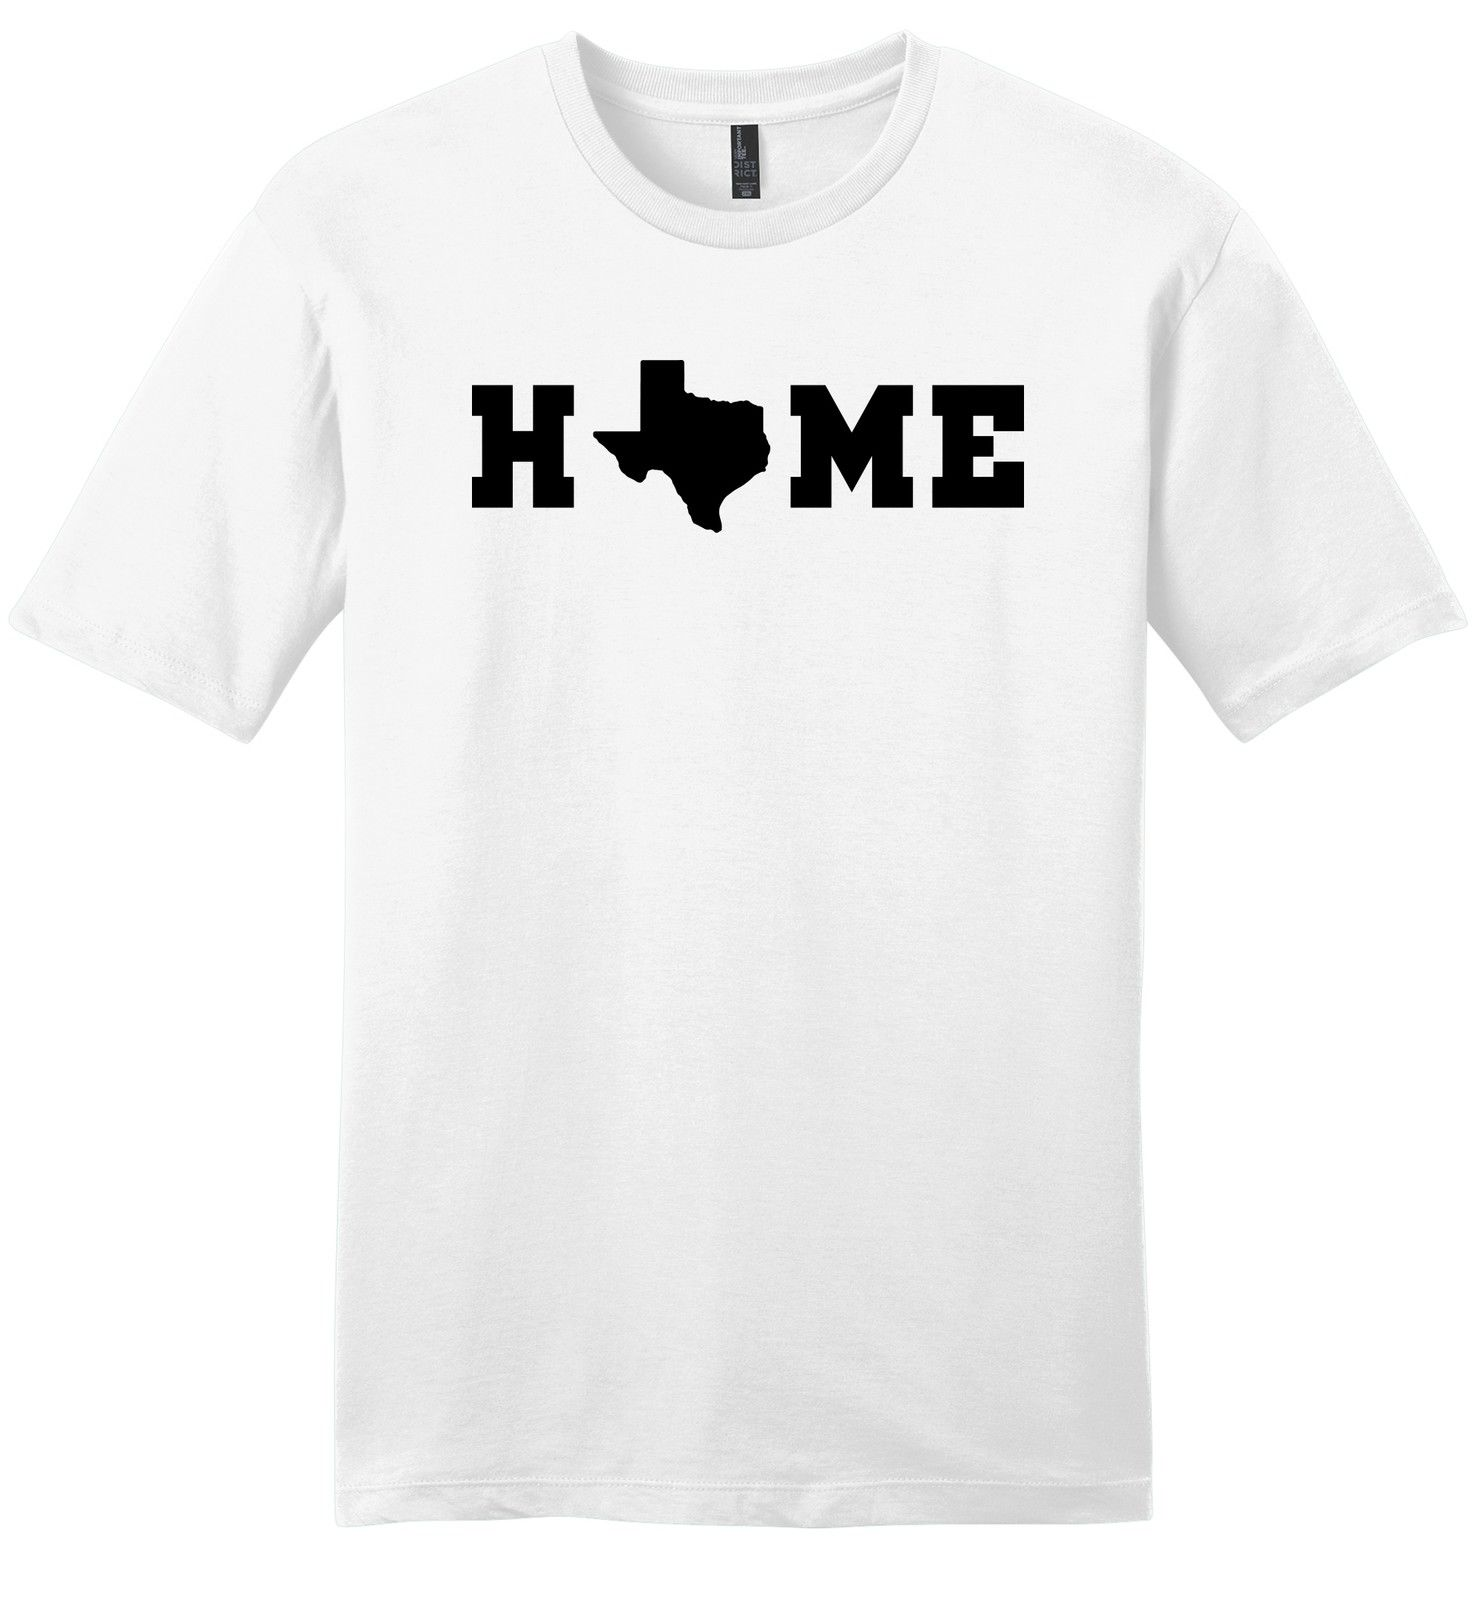 Sleeves New Fashion T Shirt Clothing Short Sleeve Home Texas Map Sot Texas Pride Texan Lonestar State Z2 Casual Crew Neck Men